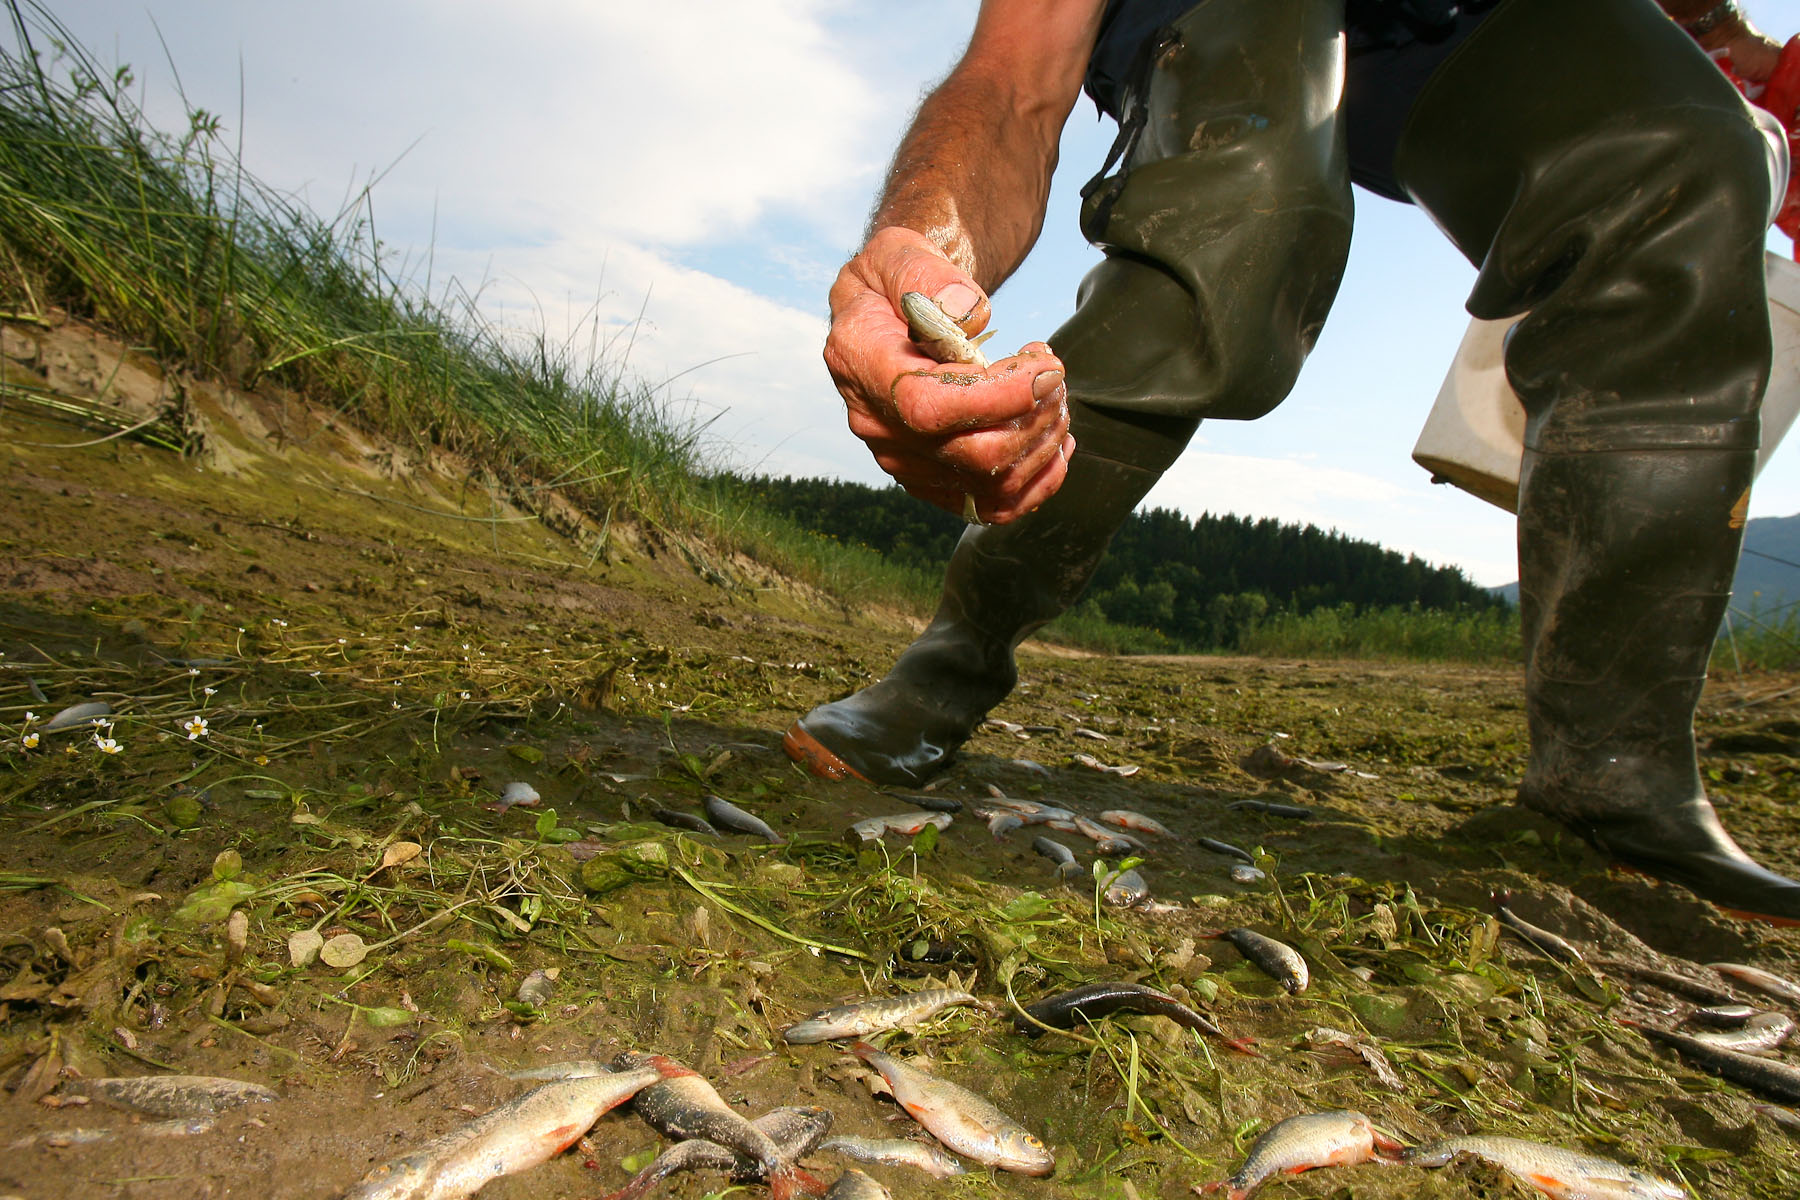 Jože Šparemblek picks up the potentially alive small pike along the Bečki riverbed. Eventually, a great number of fish dies. Mostly rudds, which are too plenty anyway and regenerate immediately. But many young pikes die as well, because pikes tend to spawn in the months that the lake usually dries out.